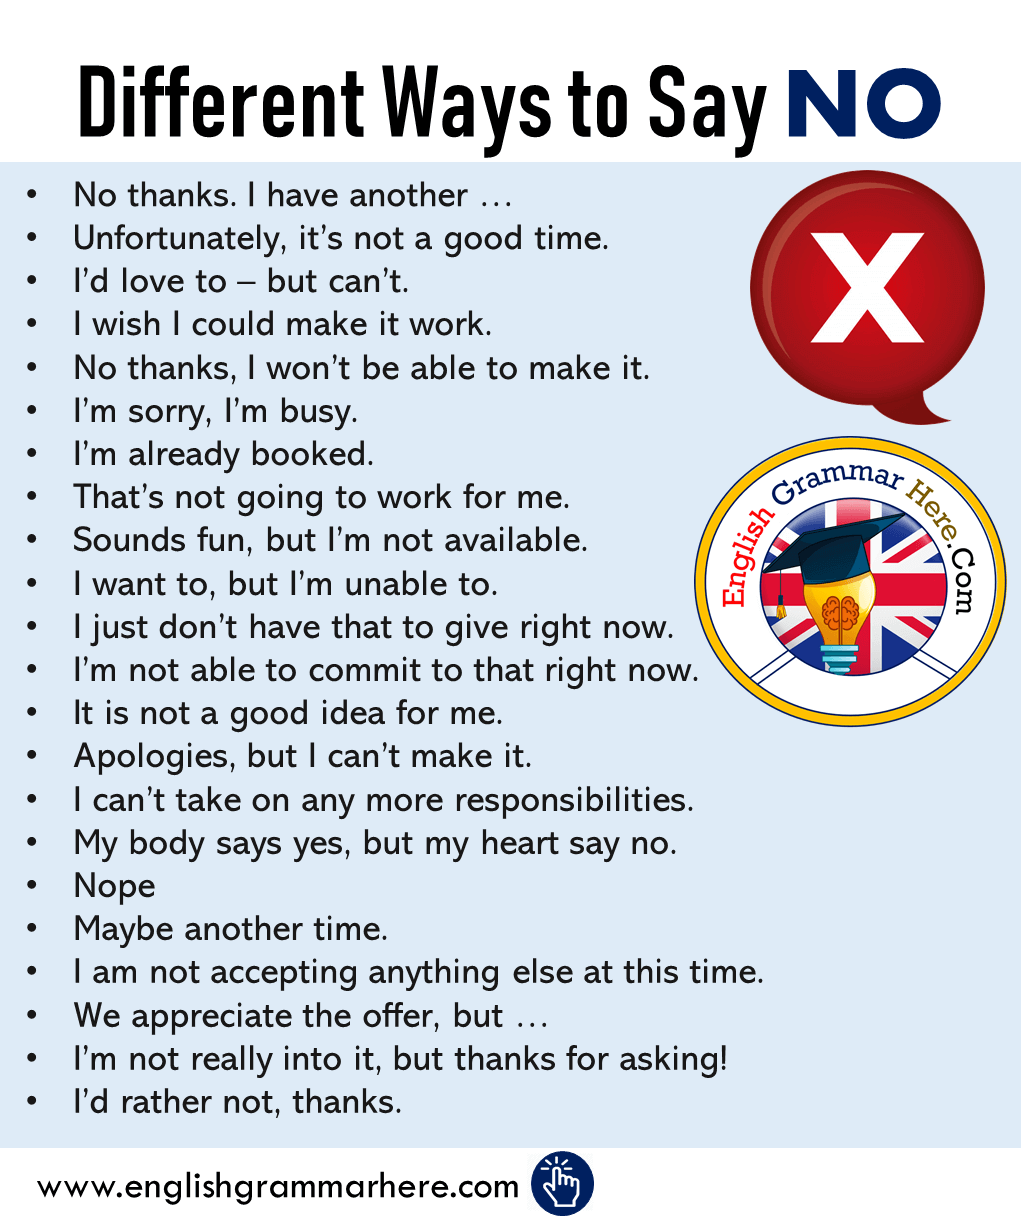 Different Ways to Say NO in English, Phrases Examples